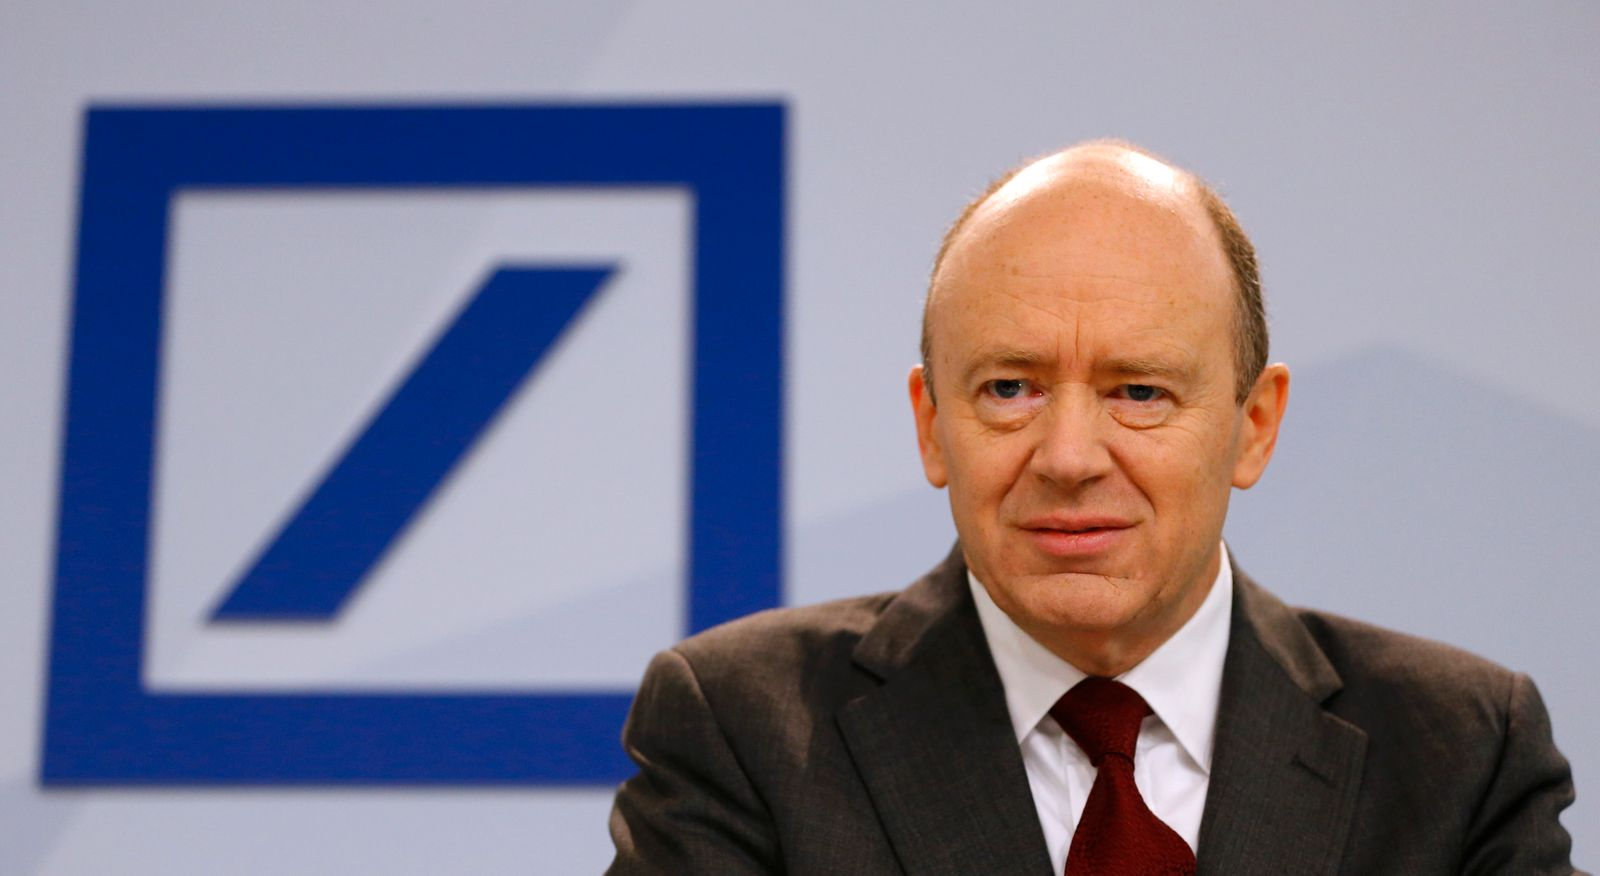 Deutsche Bank CEO Cryan